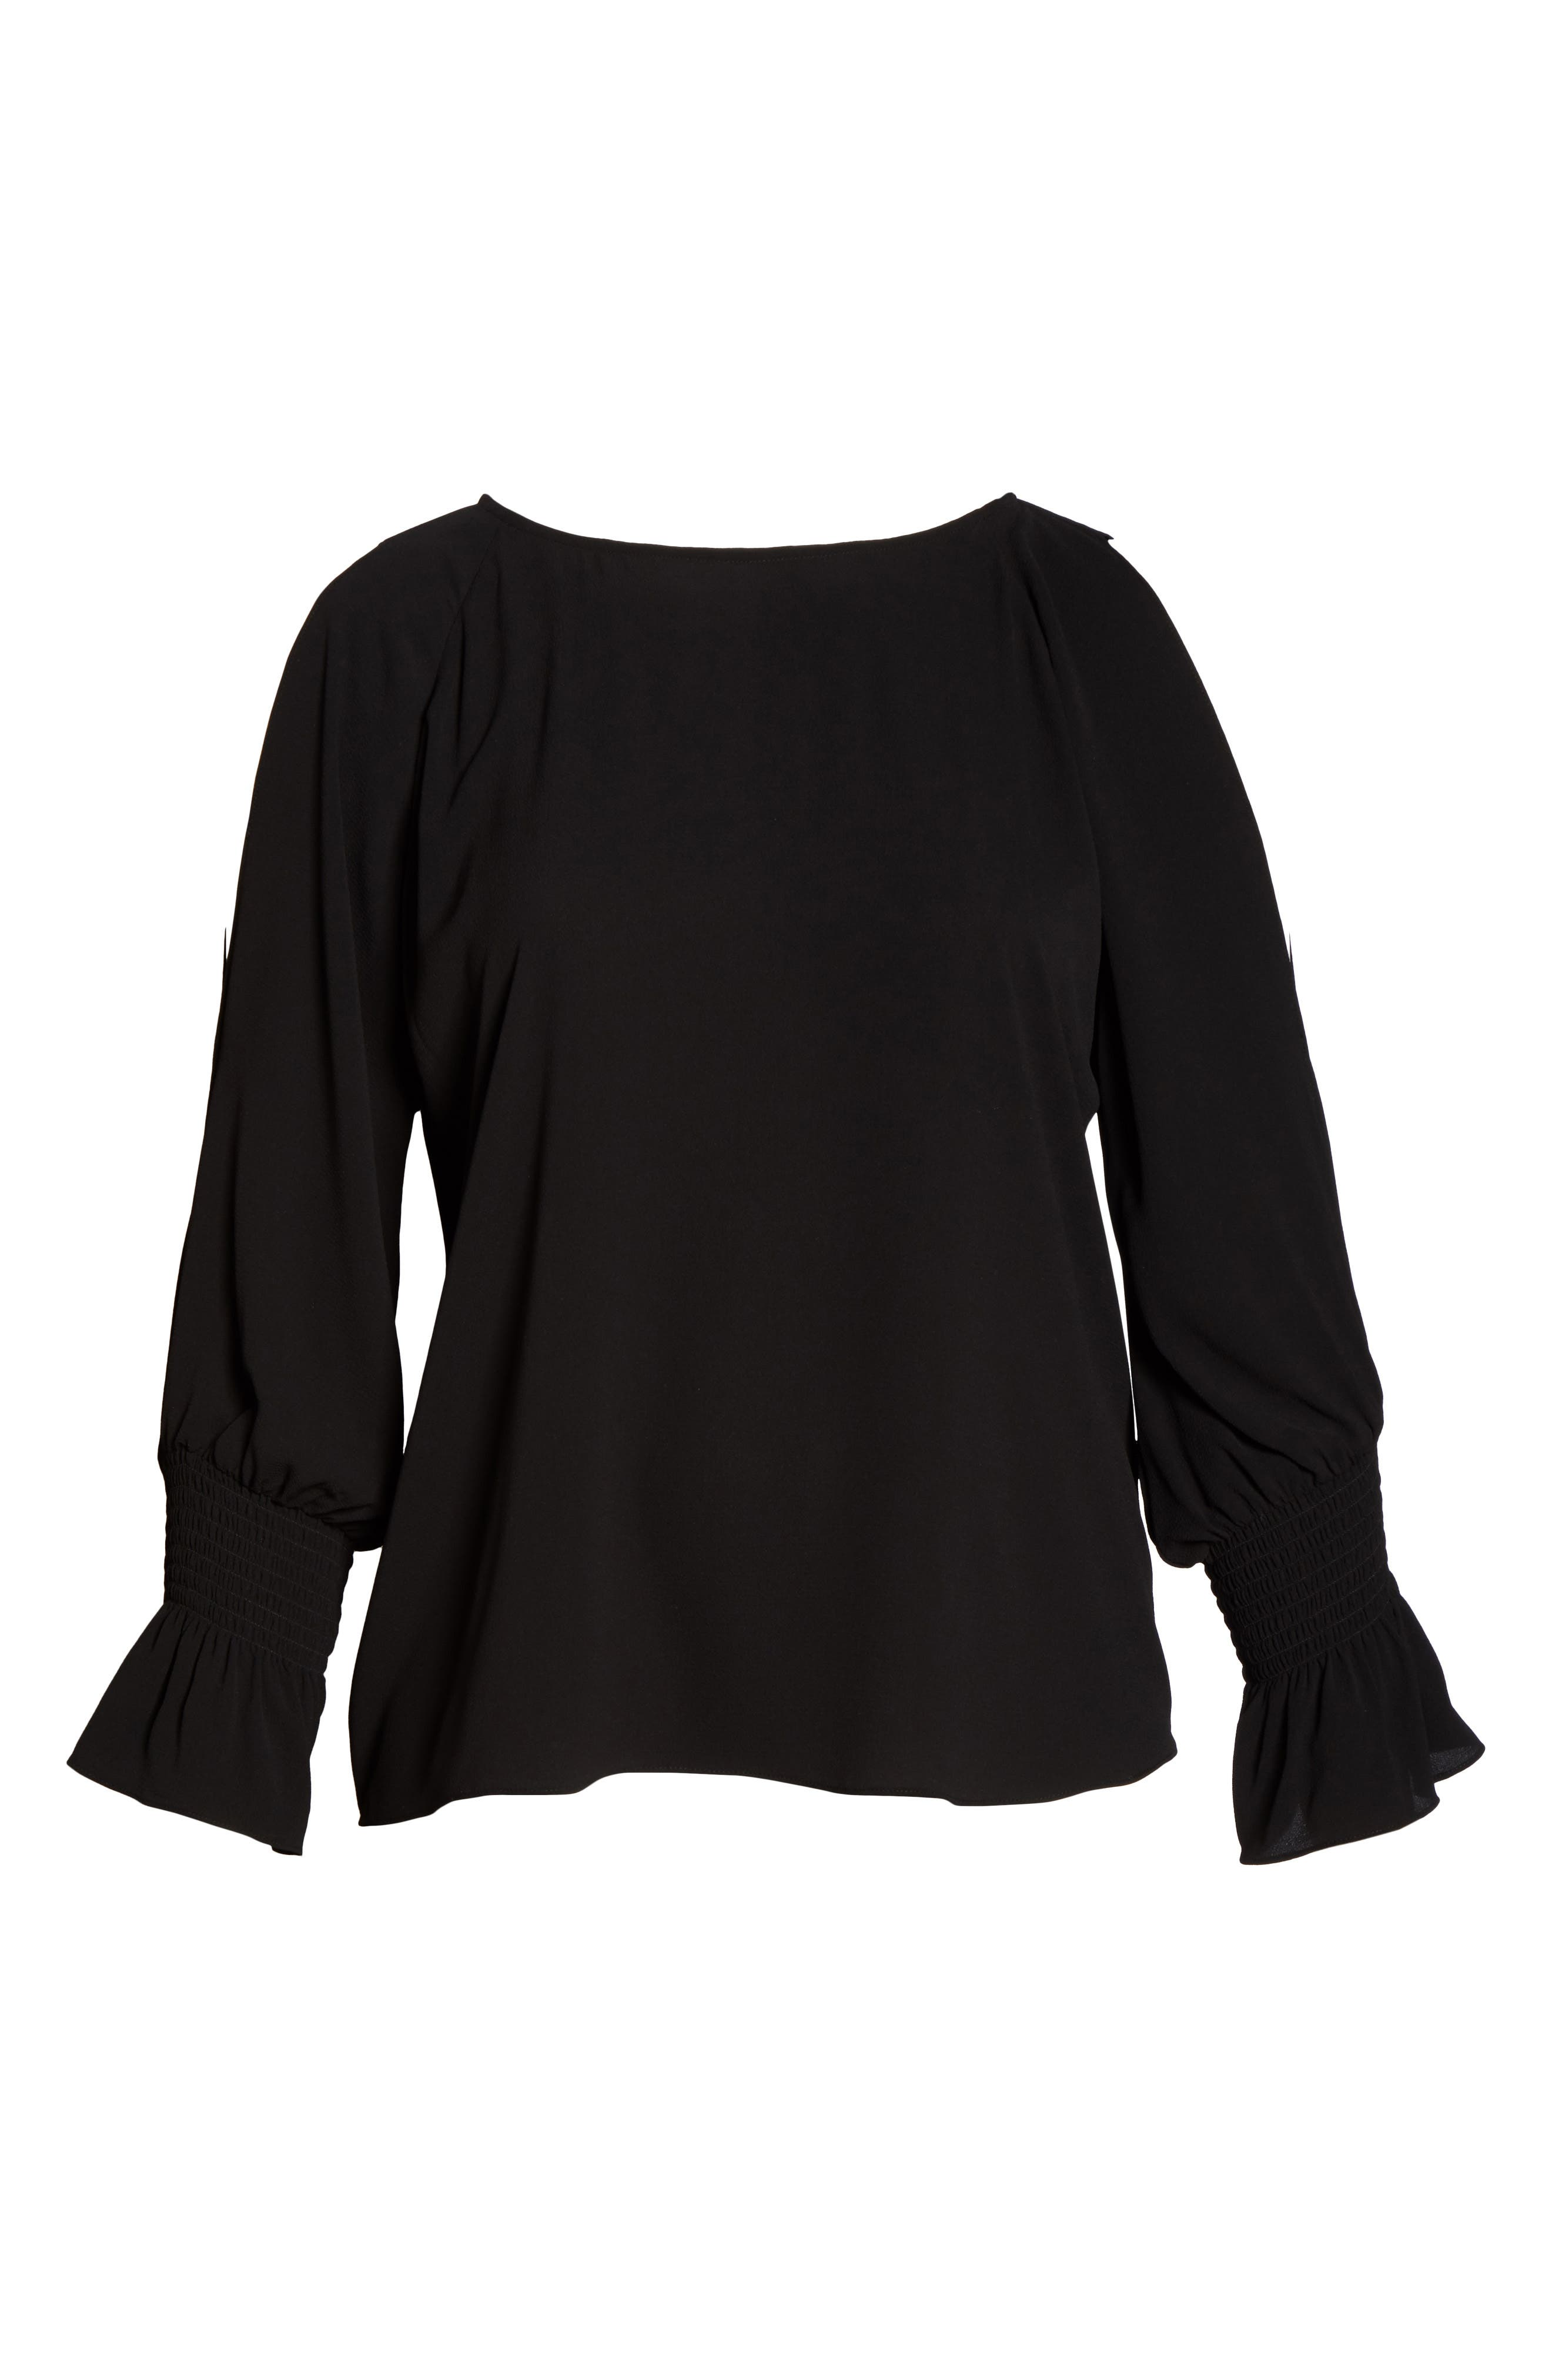 Cold Shoulder Flare Cuff Top,                             Alternate thumbnail 6, color,                             001